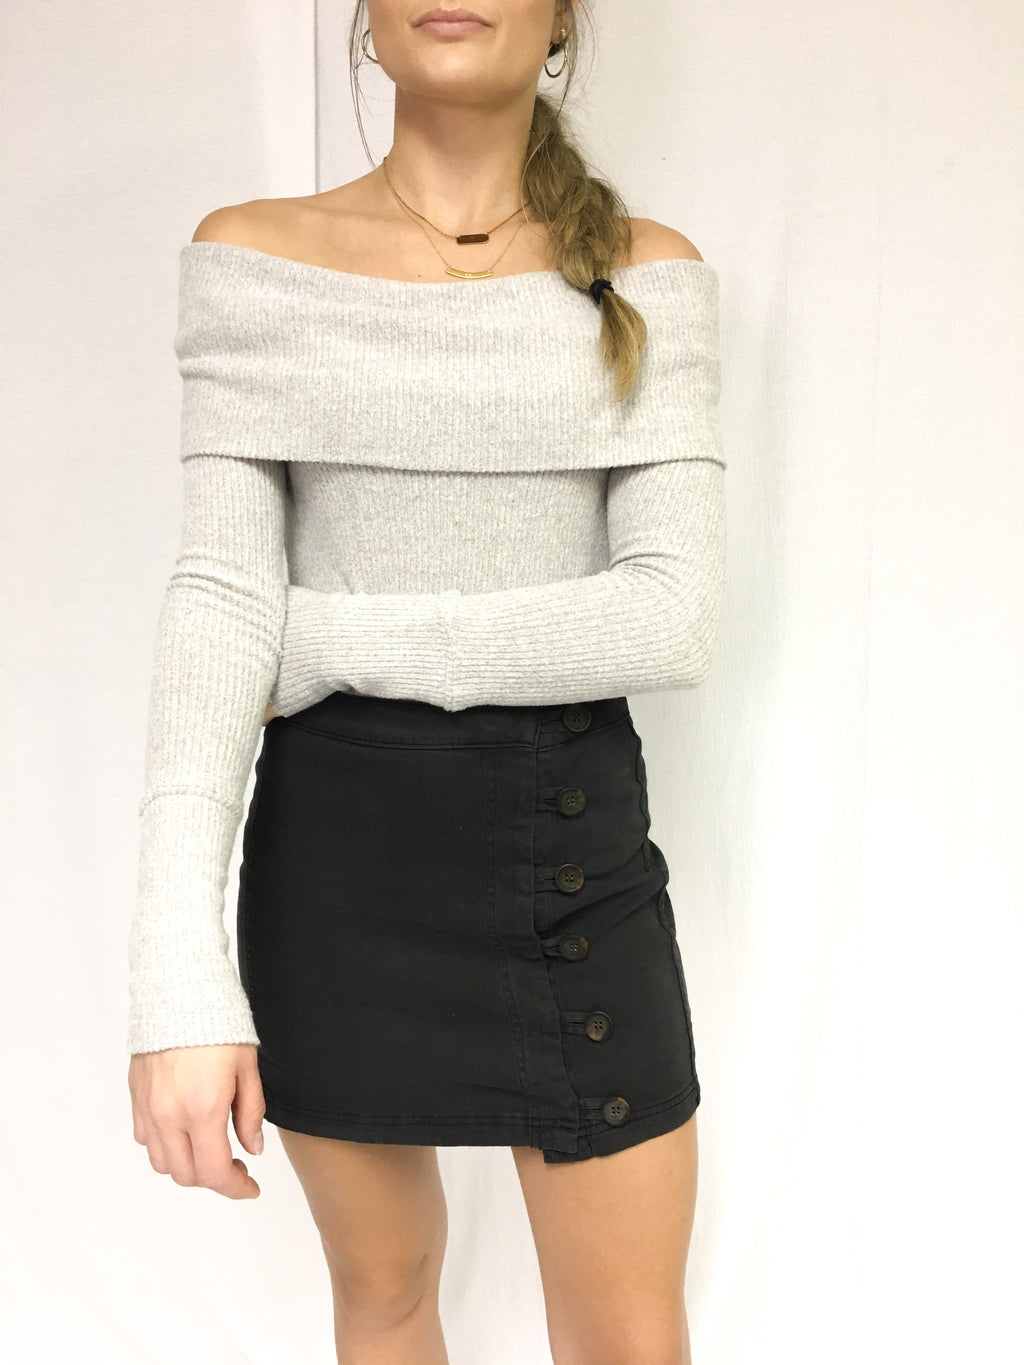 Next Level Comfy Sweater In Grey